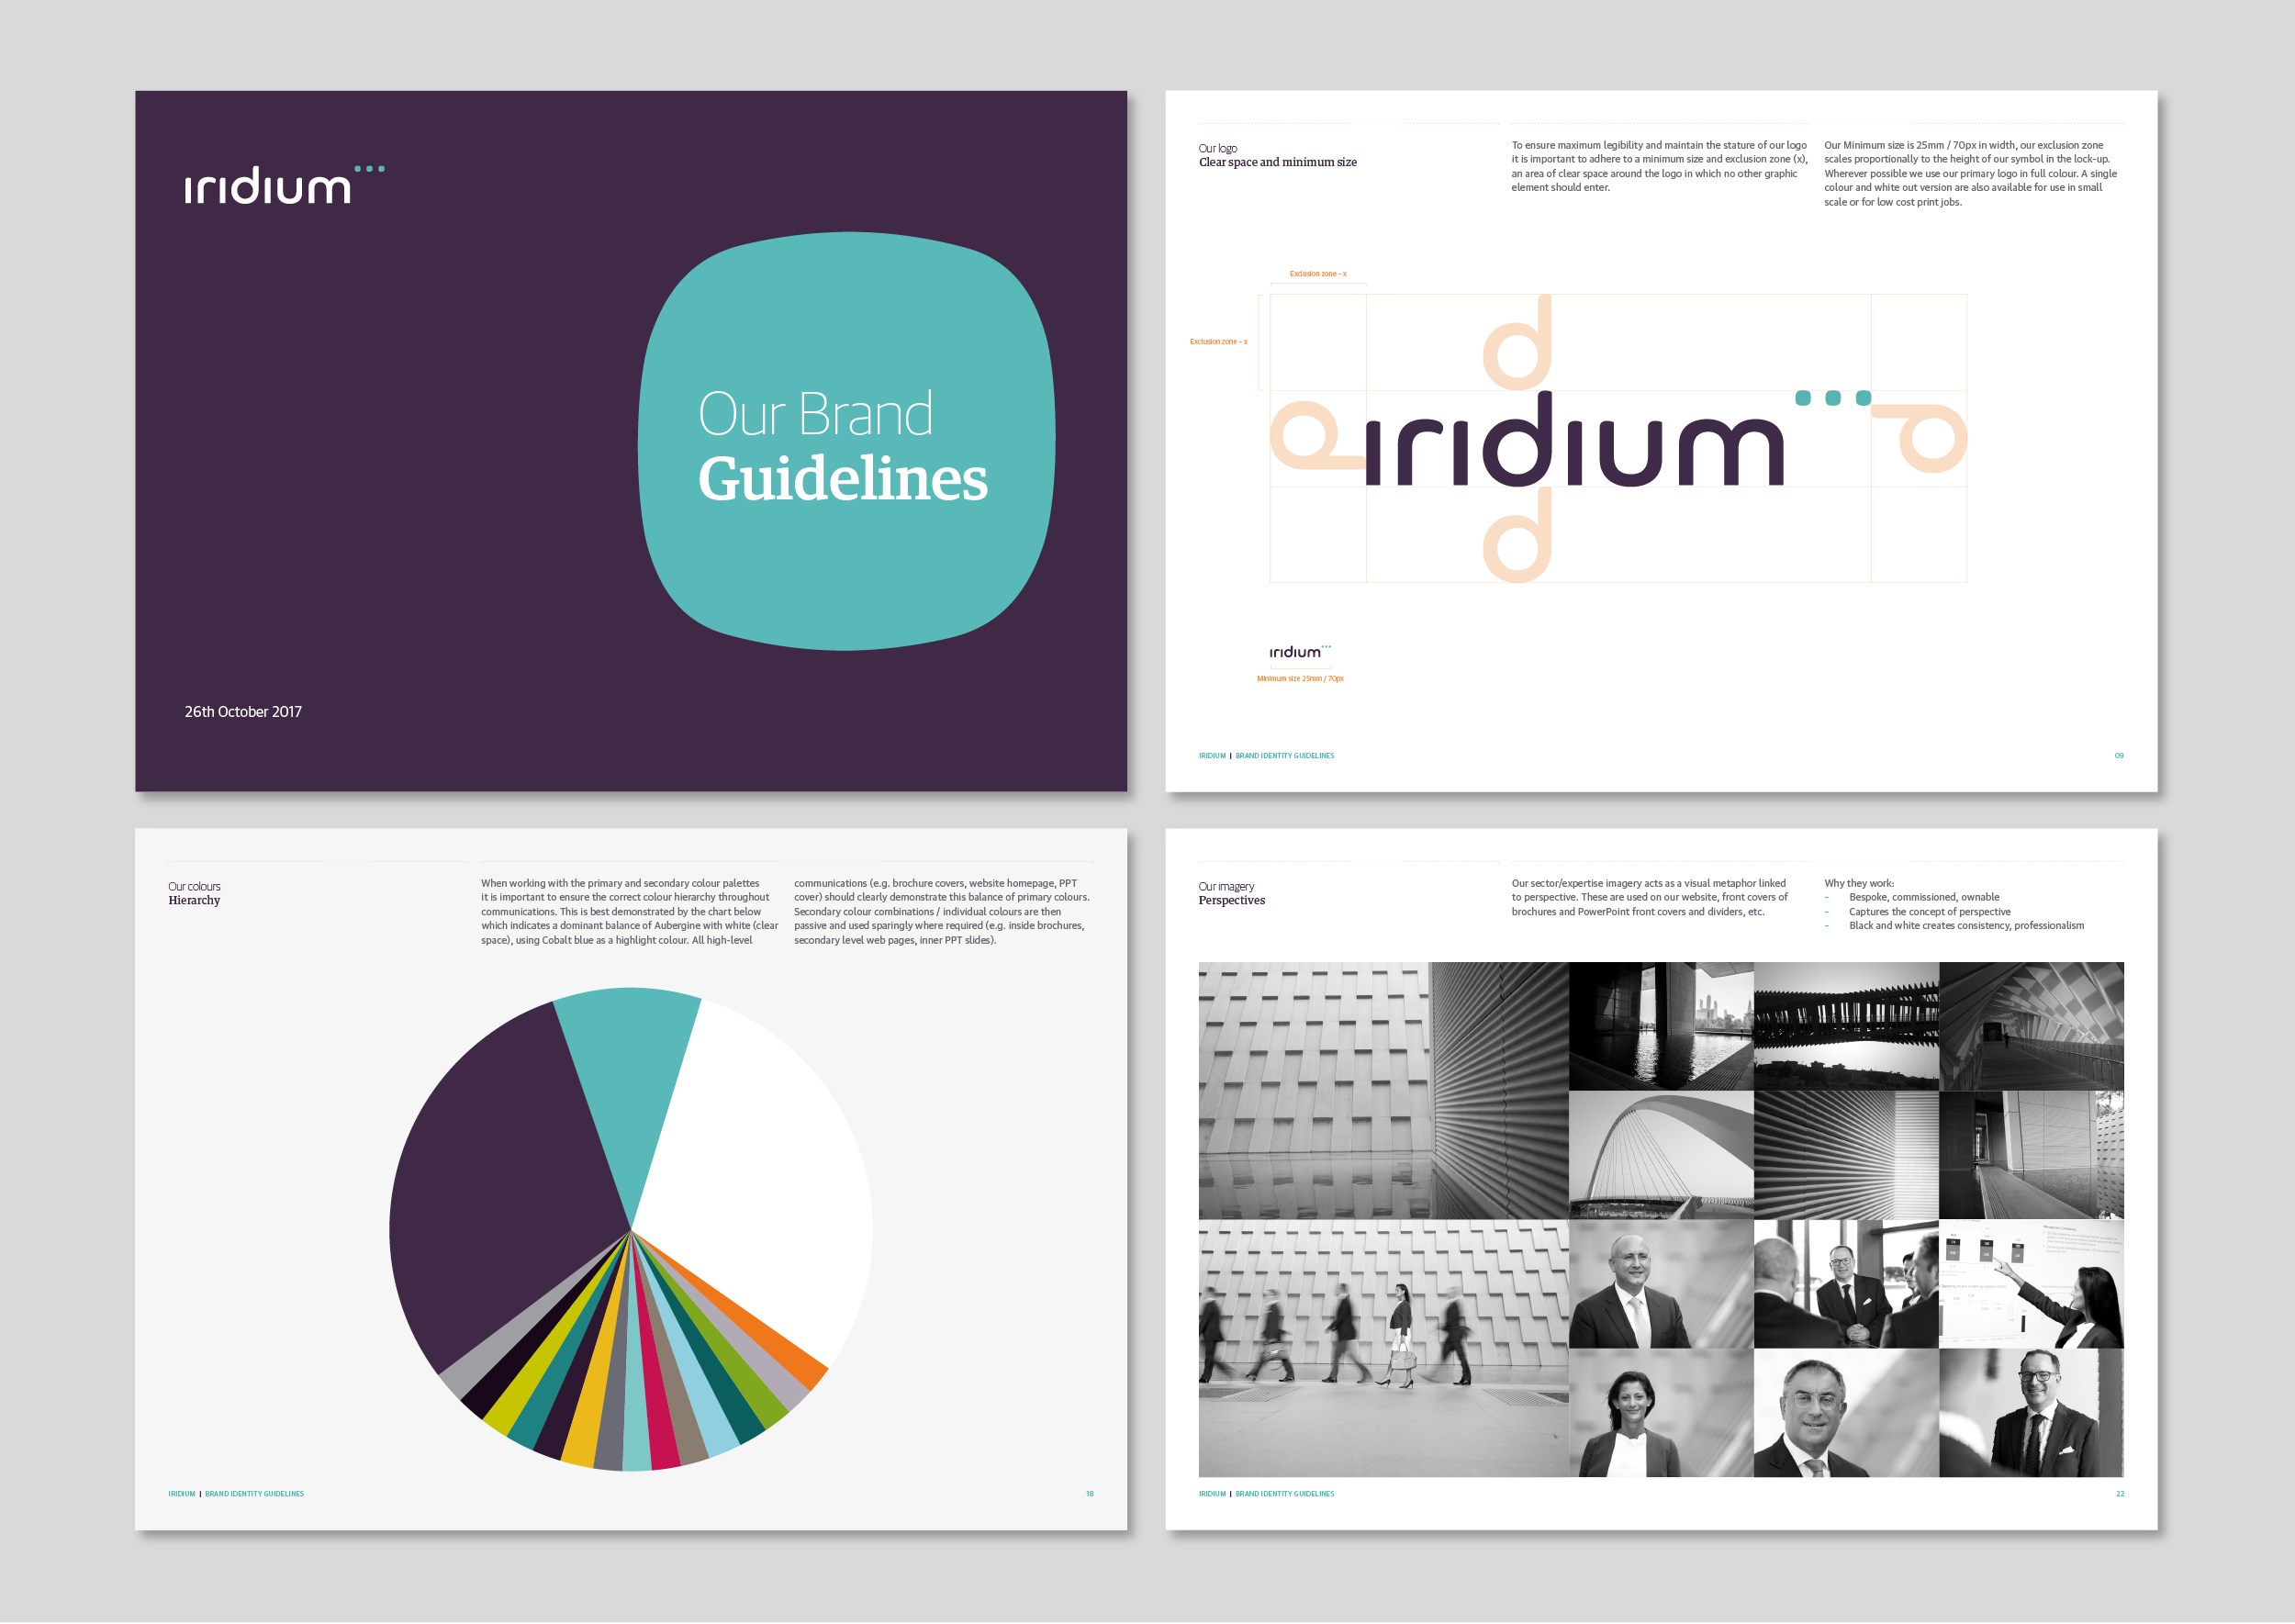 Iridium-Investor-Relations-Tunbridge-StudioArtboard 2 copy 3.png